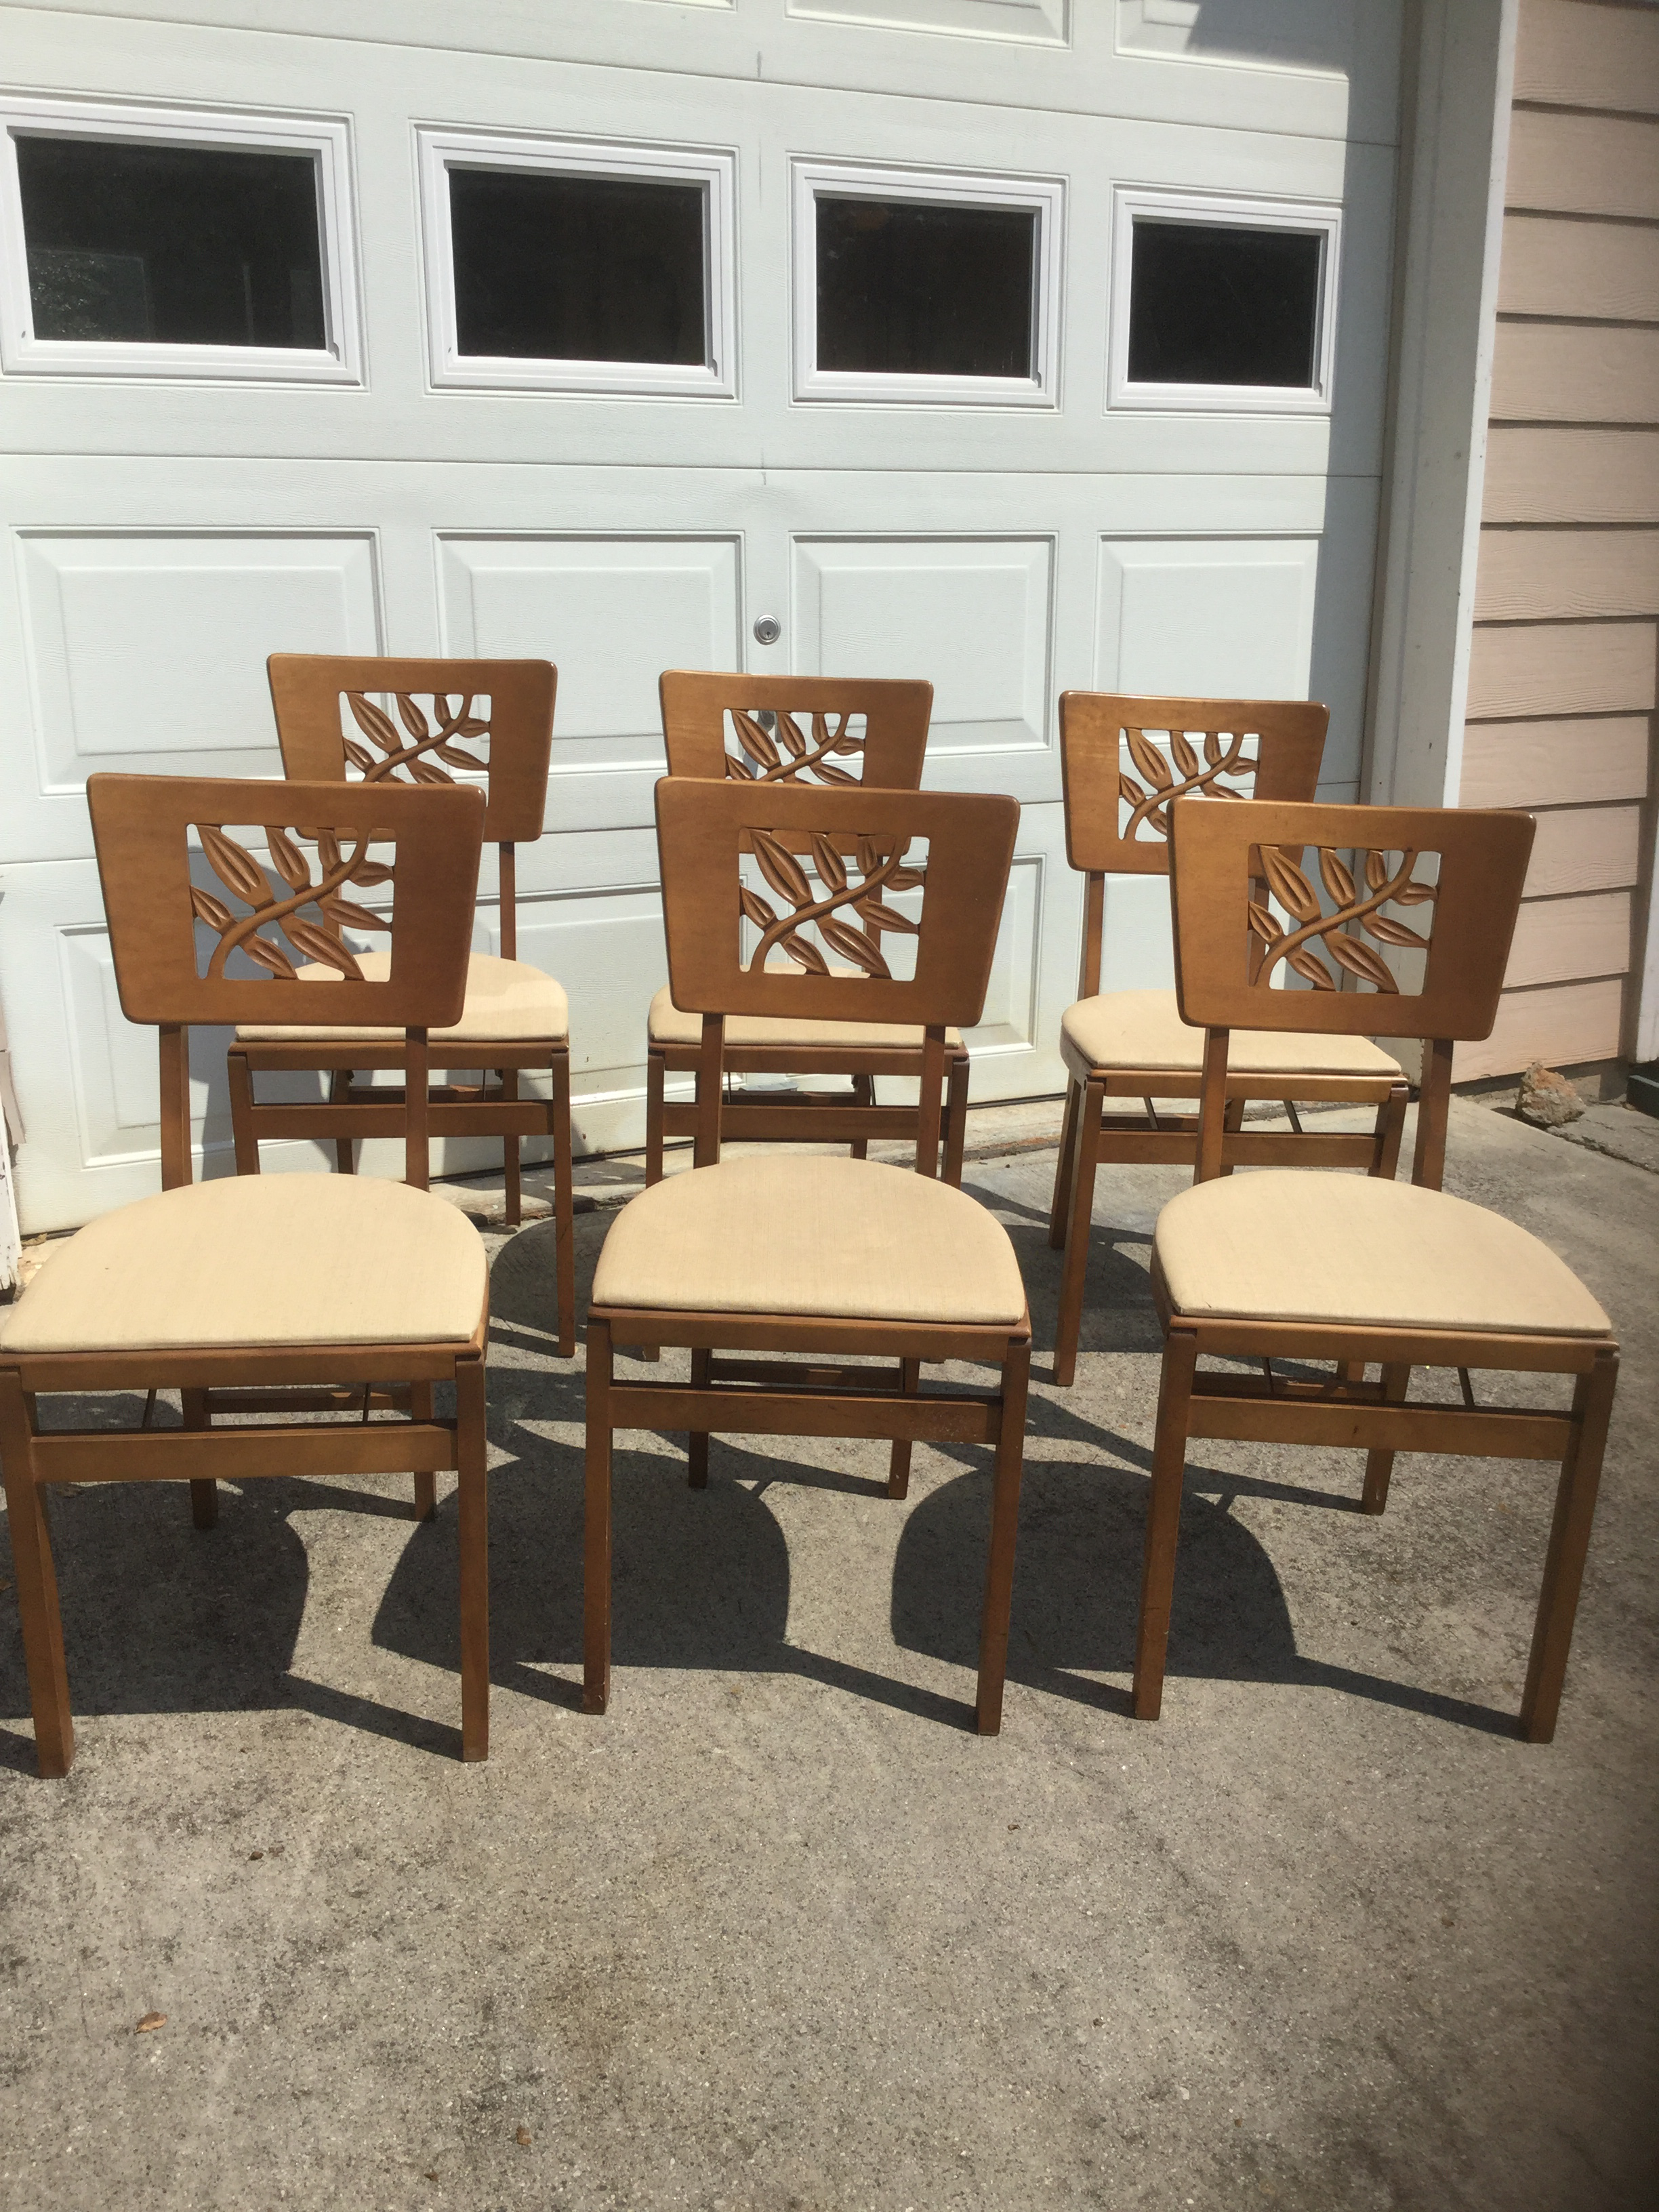 Art deco style furniture Chair What Rare Find To Obtain Whole Set Of Authentic Vintage Art Deco Style Montypanesarcom Vintage Carved Art Deco Chairs Set Of Chairish